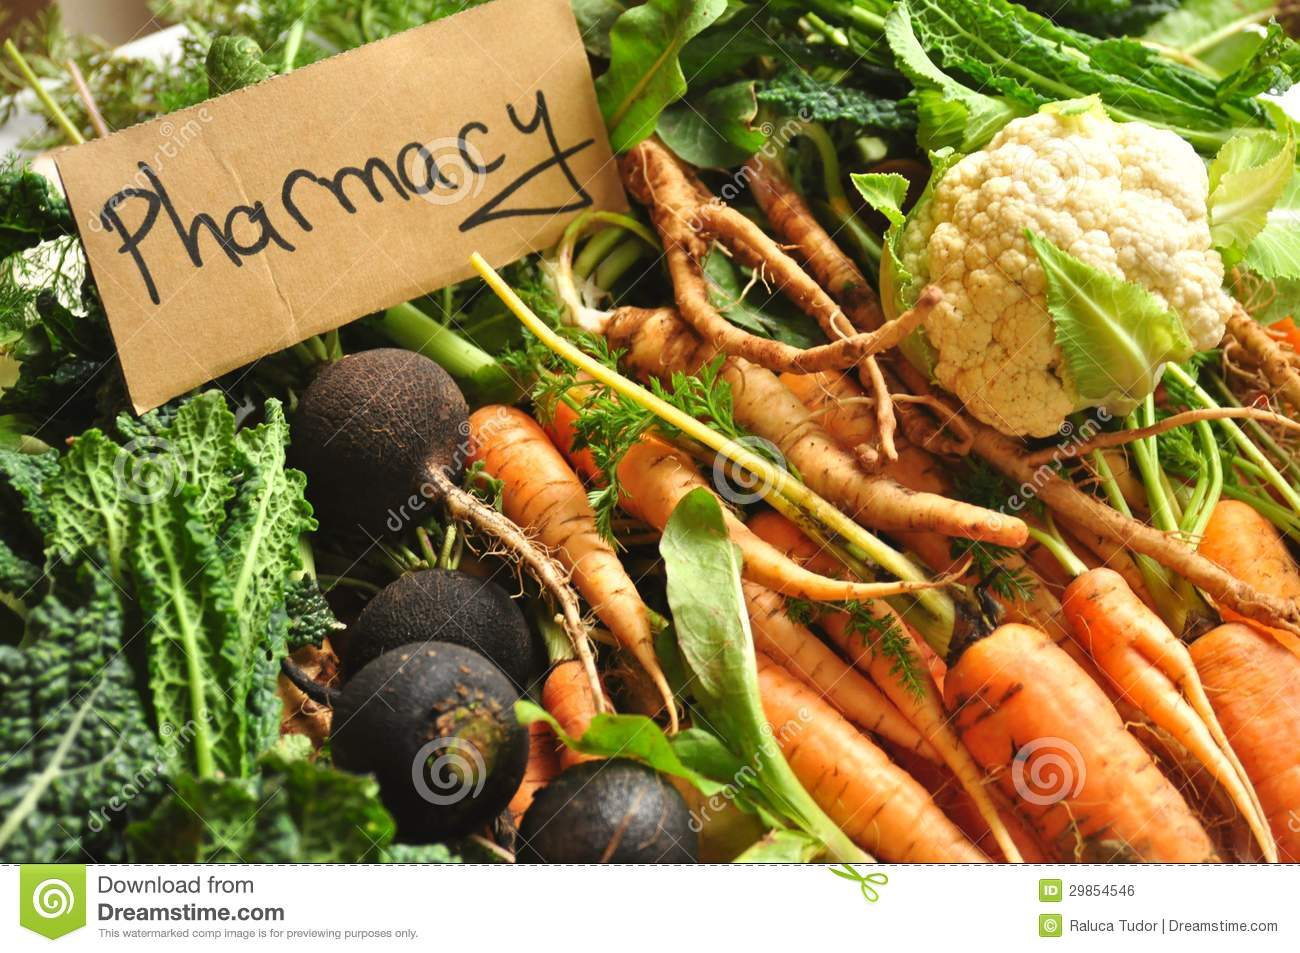 Real, organic food as our pharmacy, medicine